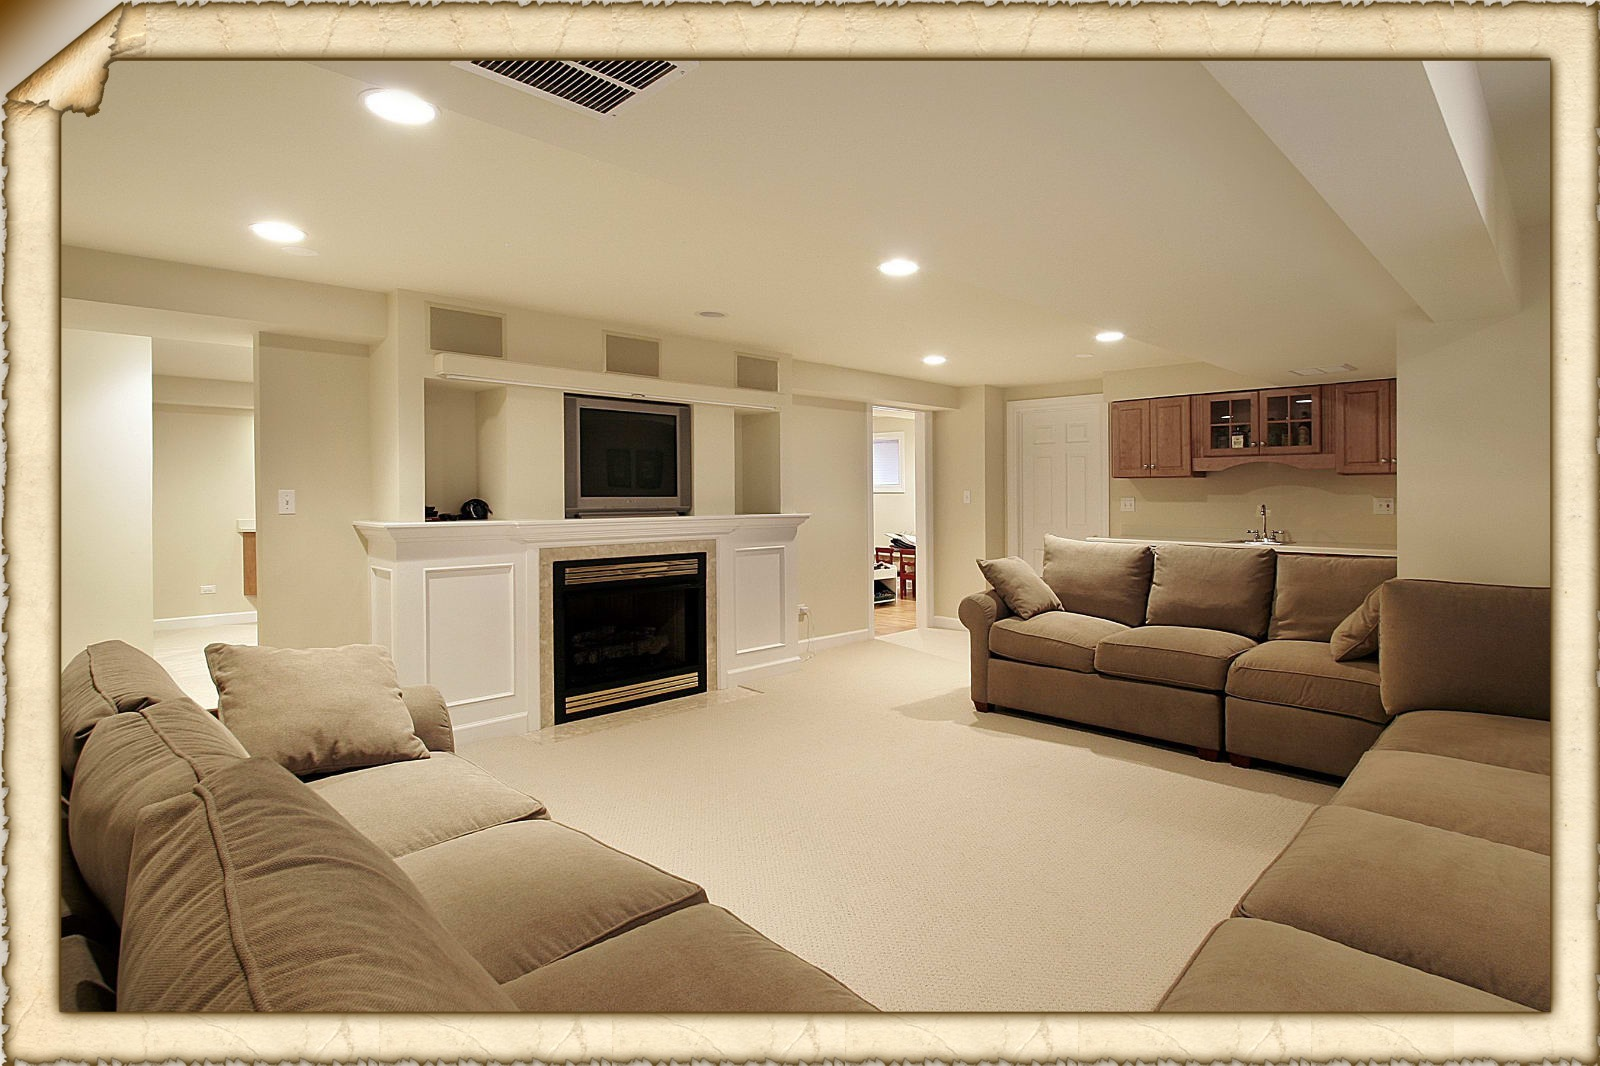 & Easy-to-follow Finished Basement Ideas - Basement Bar Ideas